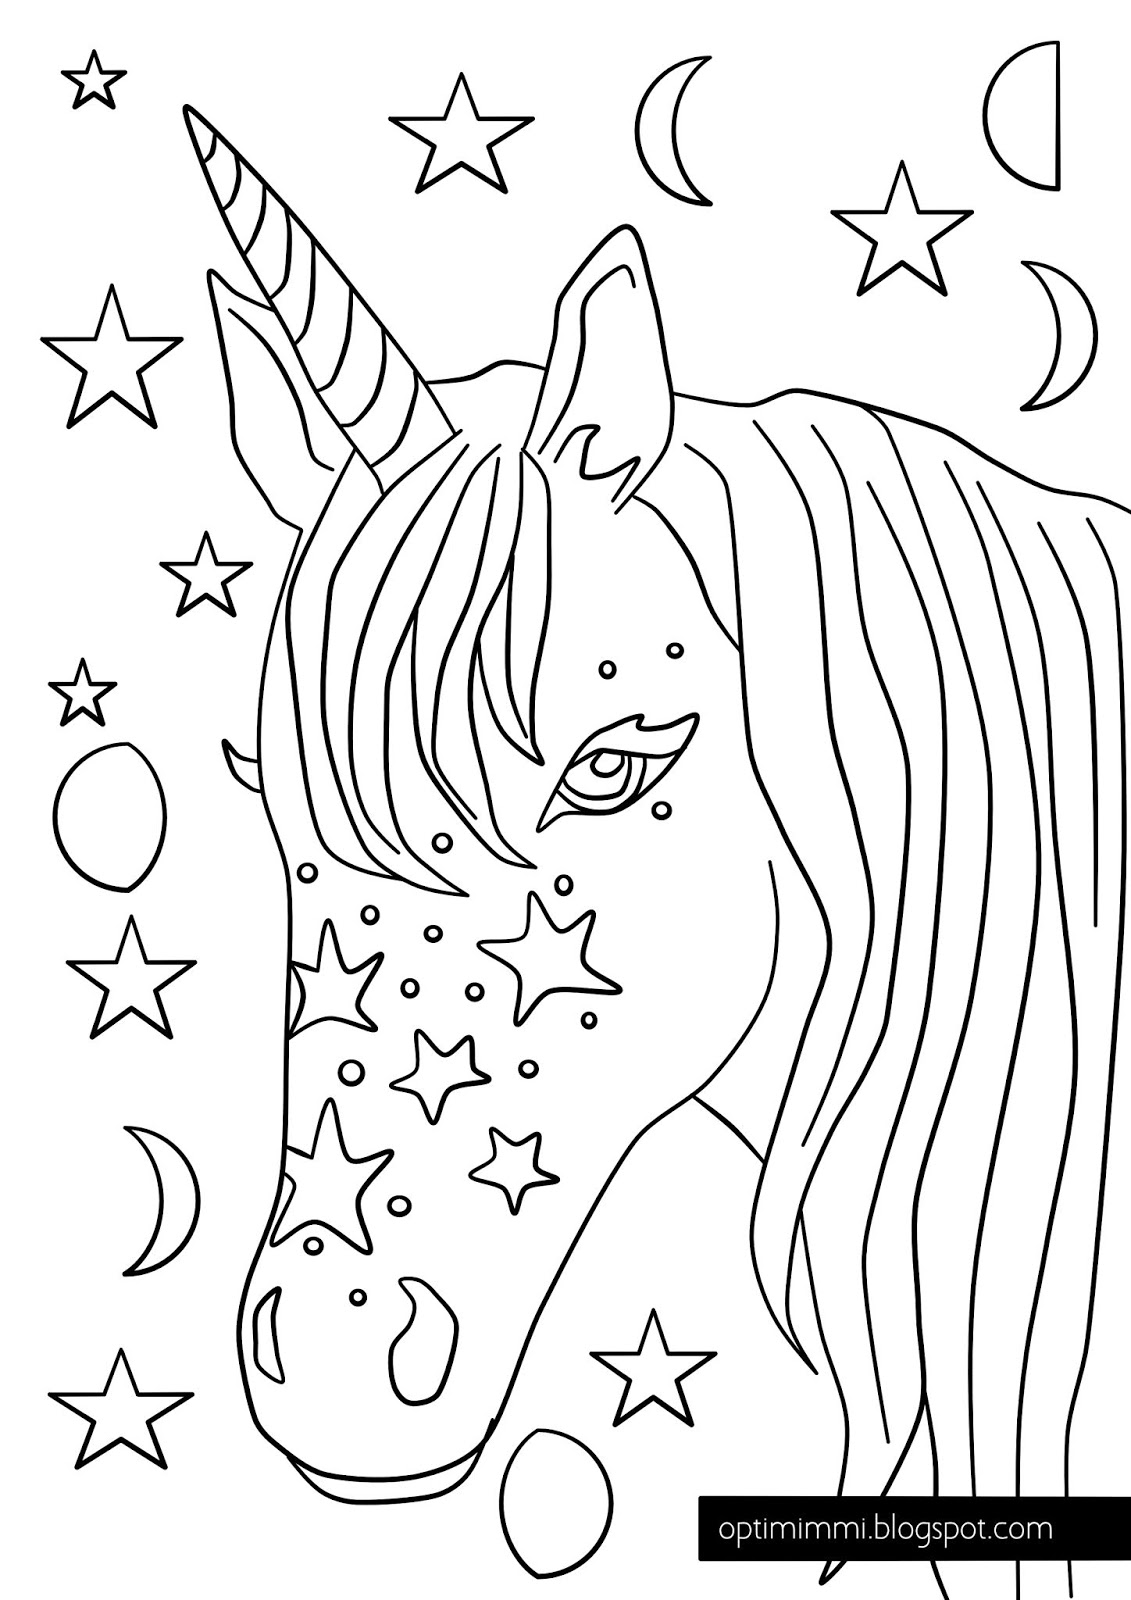 unicorn coloring sheets printable kindergarten unicorn colouring pages bestappsforkidscom printable unicorn sheets coloring